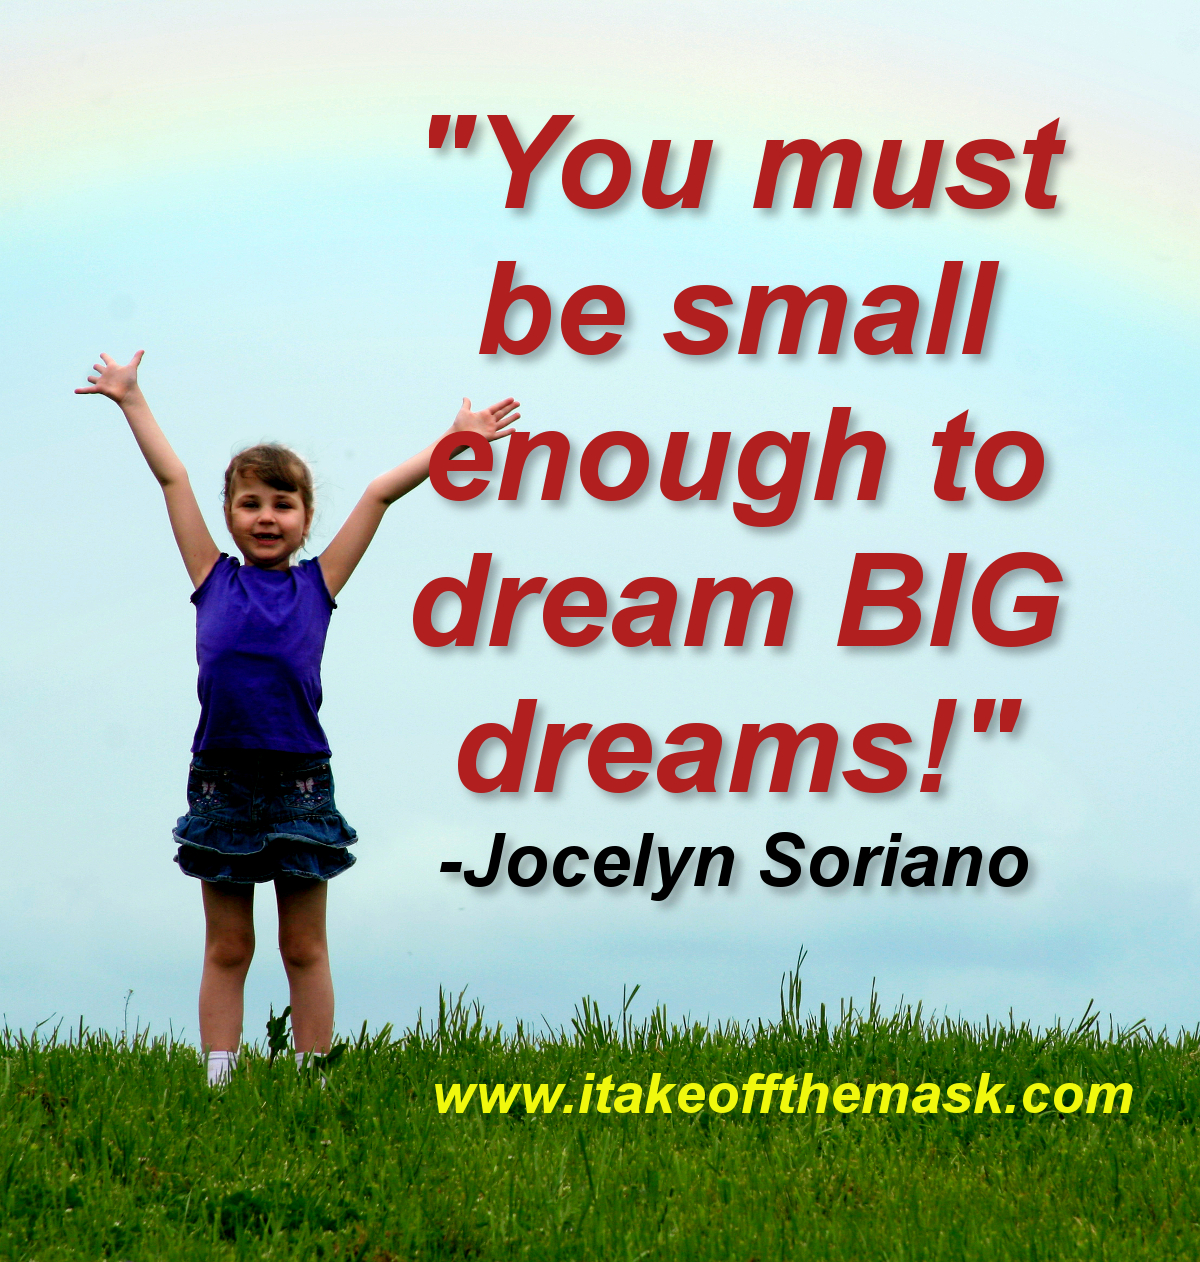 To Dream Big Dreams